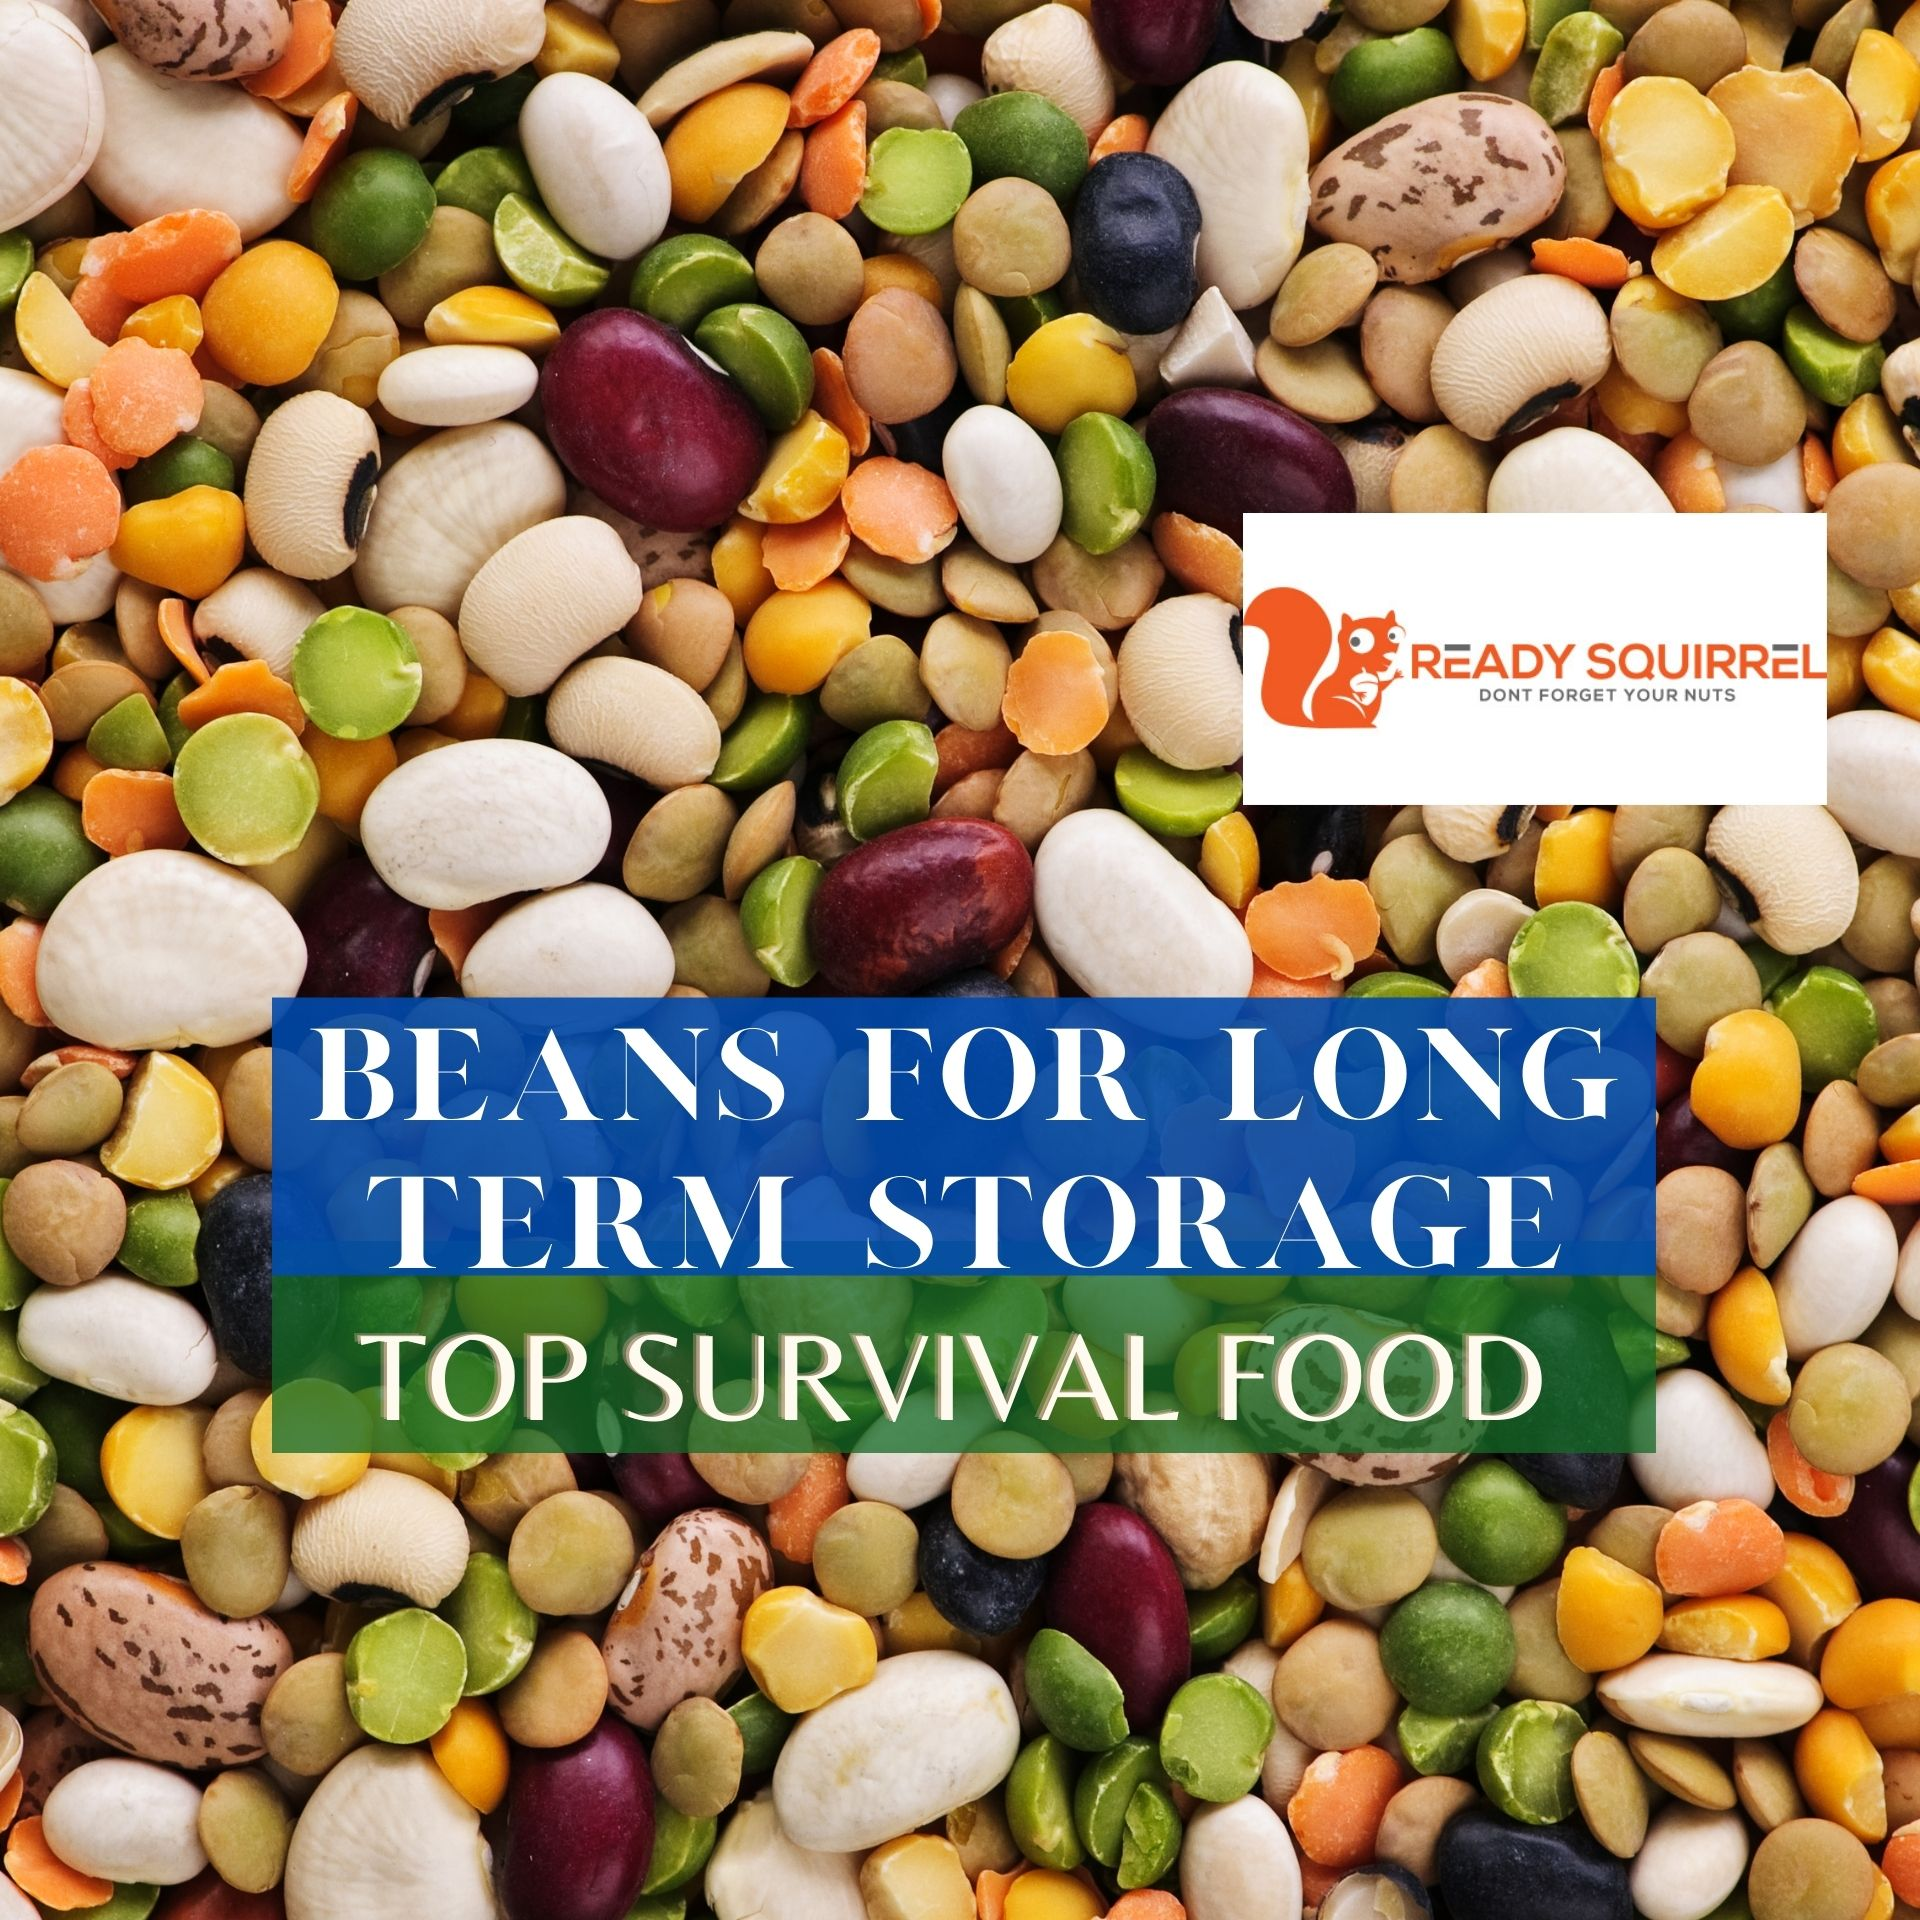 Beans For Long Term Storage: Top Survival Food